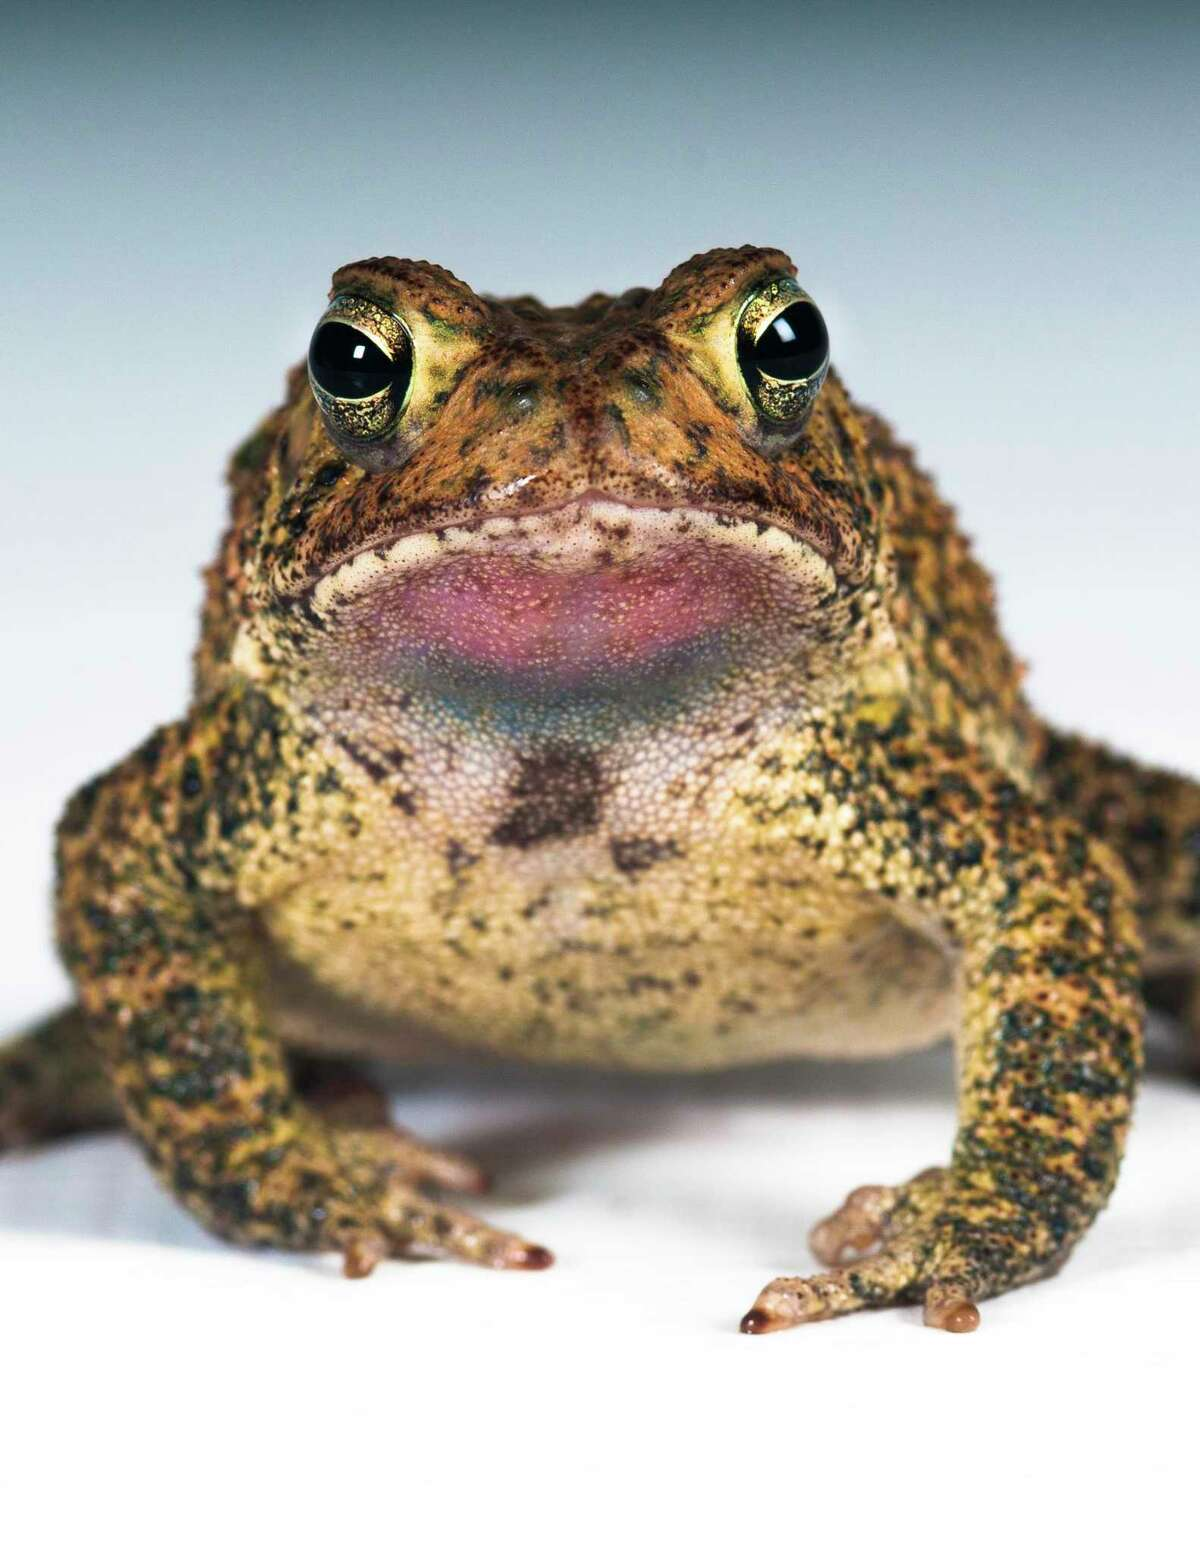 The Houston toad is only found in areas of deep, sandy soil in east-central Texas.